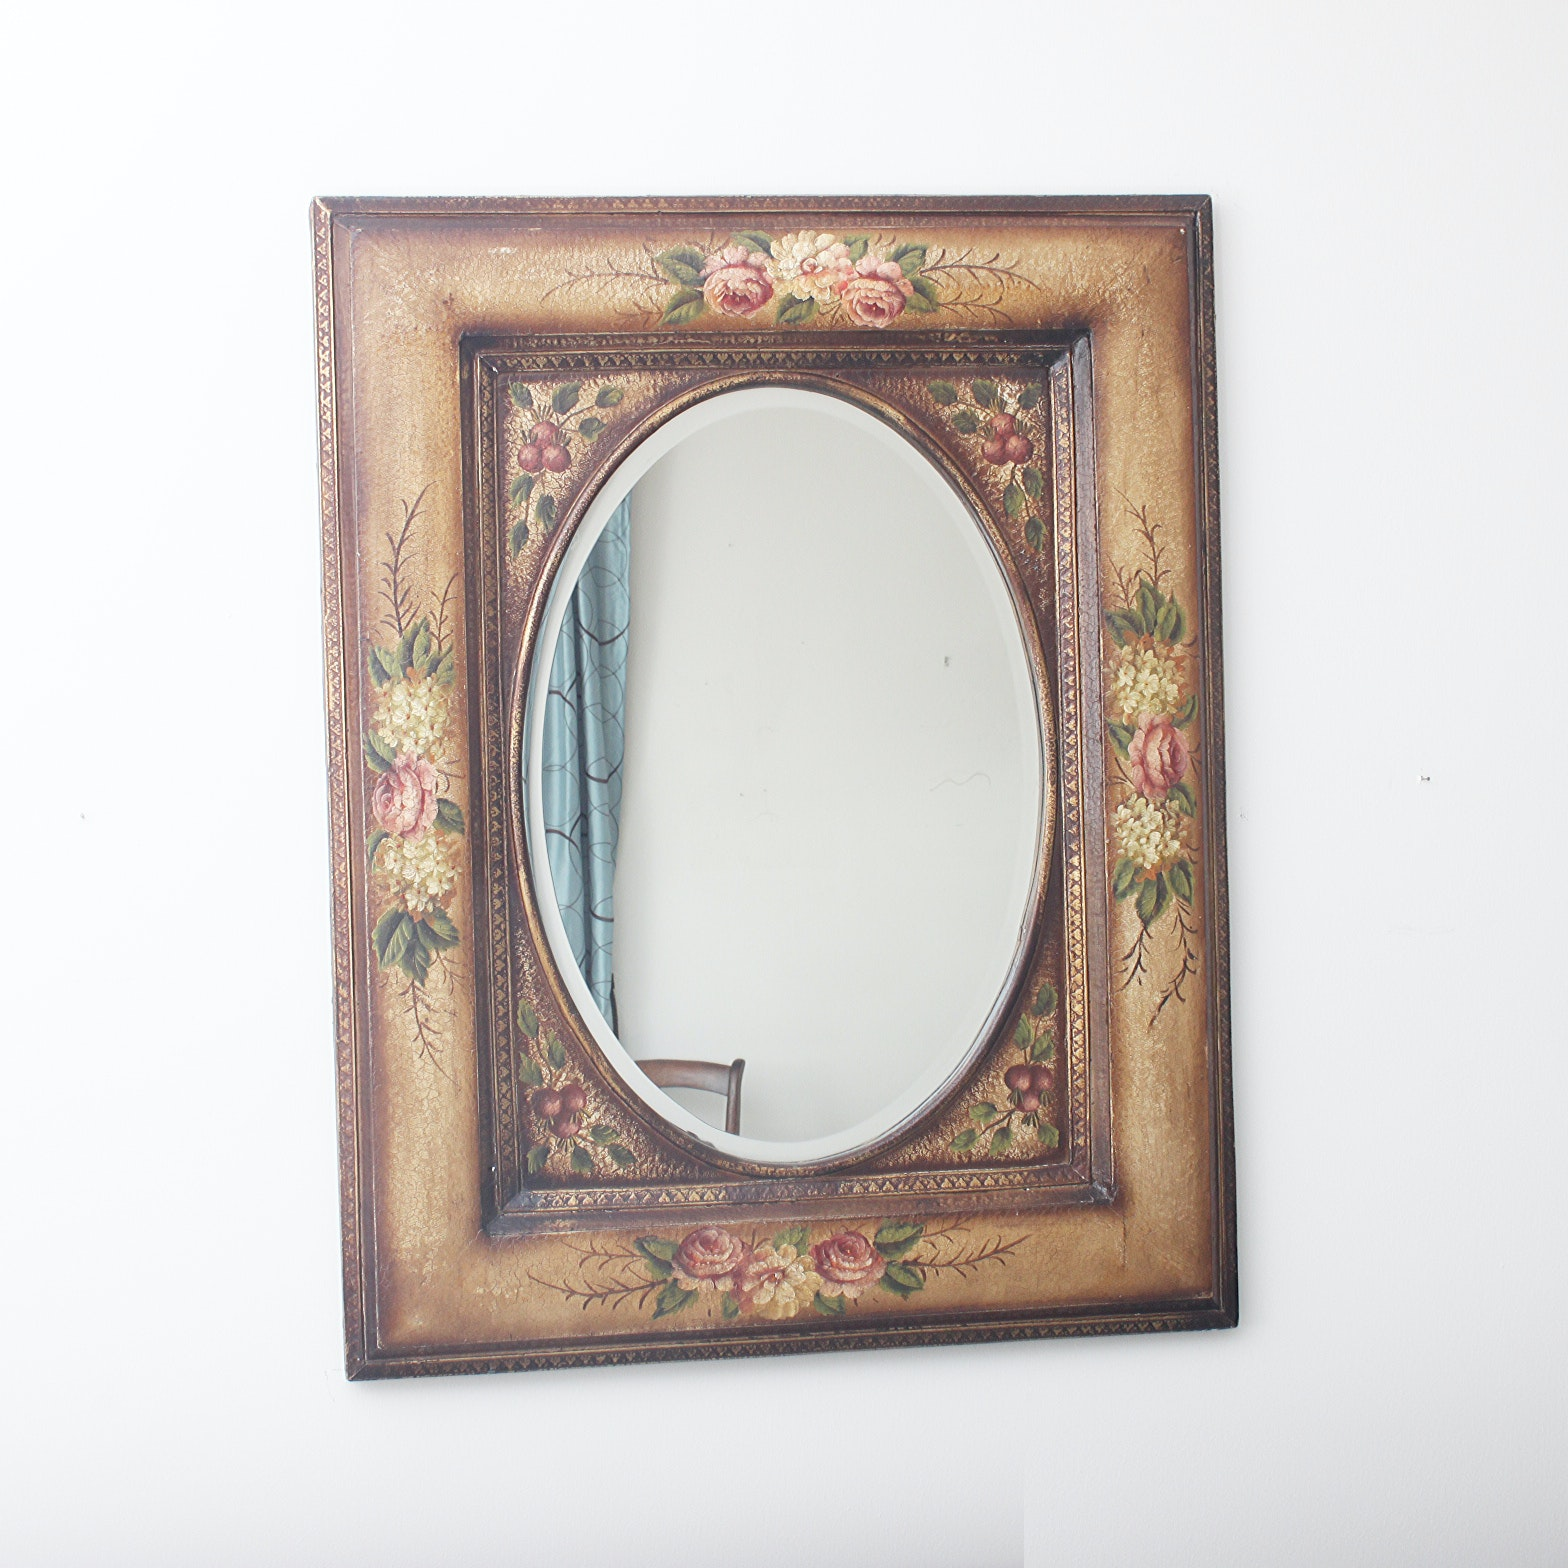 Rustic Floral Wall Mirror